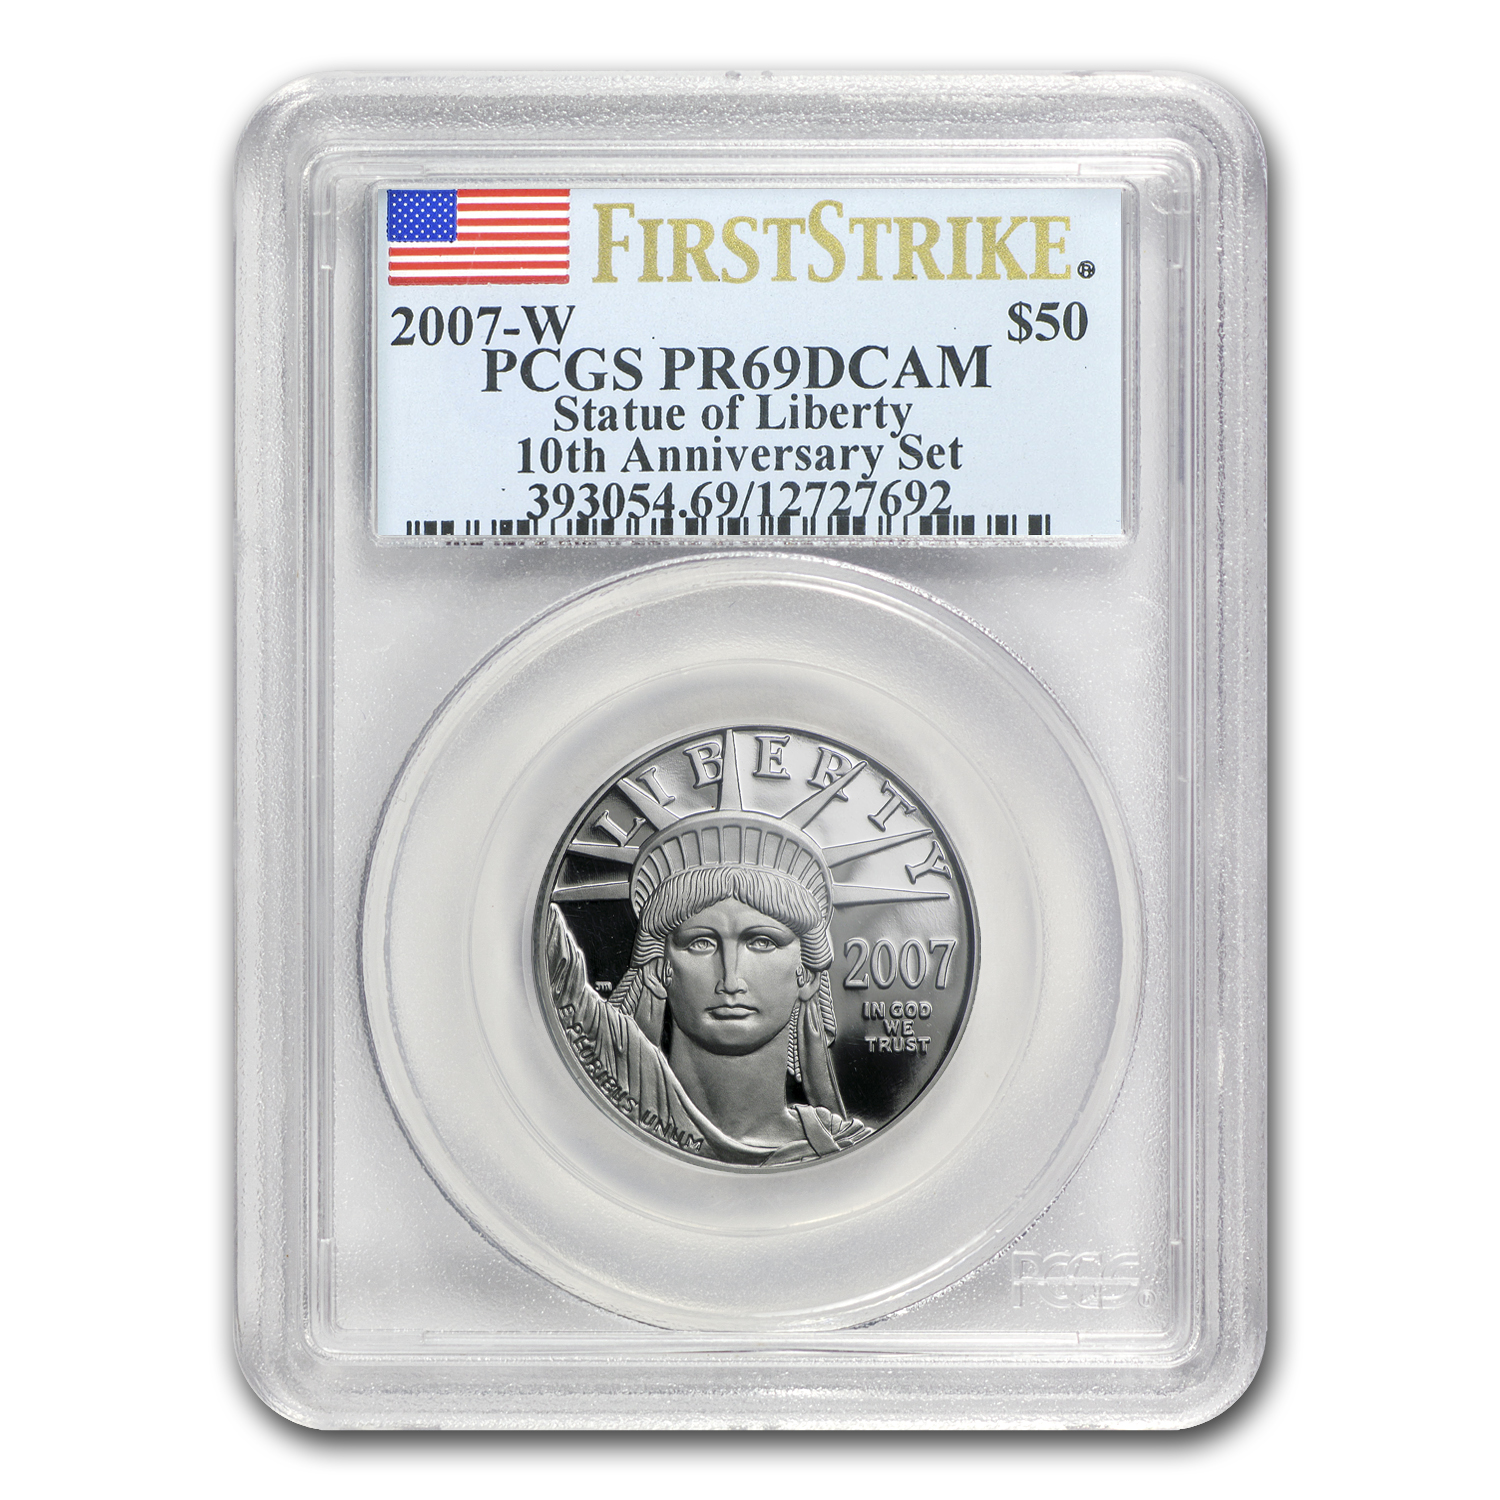 2007-W 1/2 oz Proof Platinum Eagle PR-69 PCGS (FS, 10th Anniv)